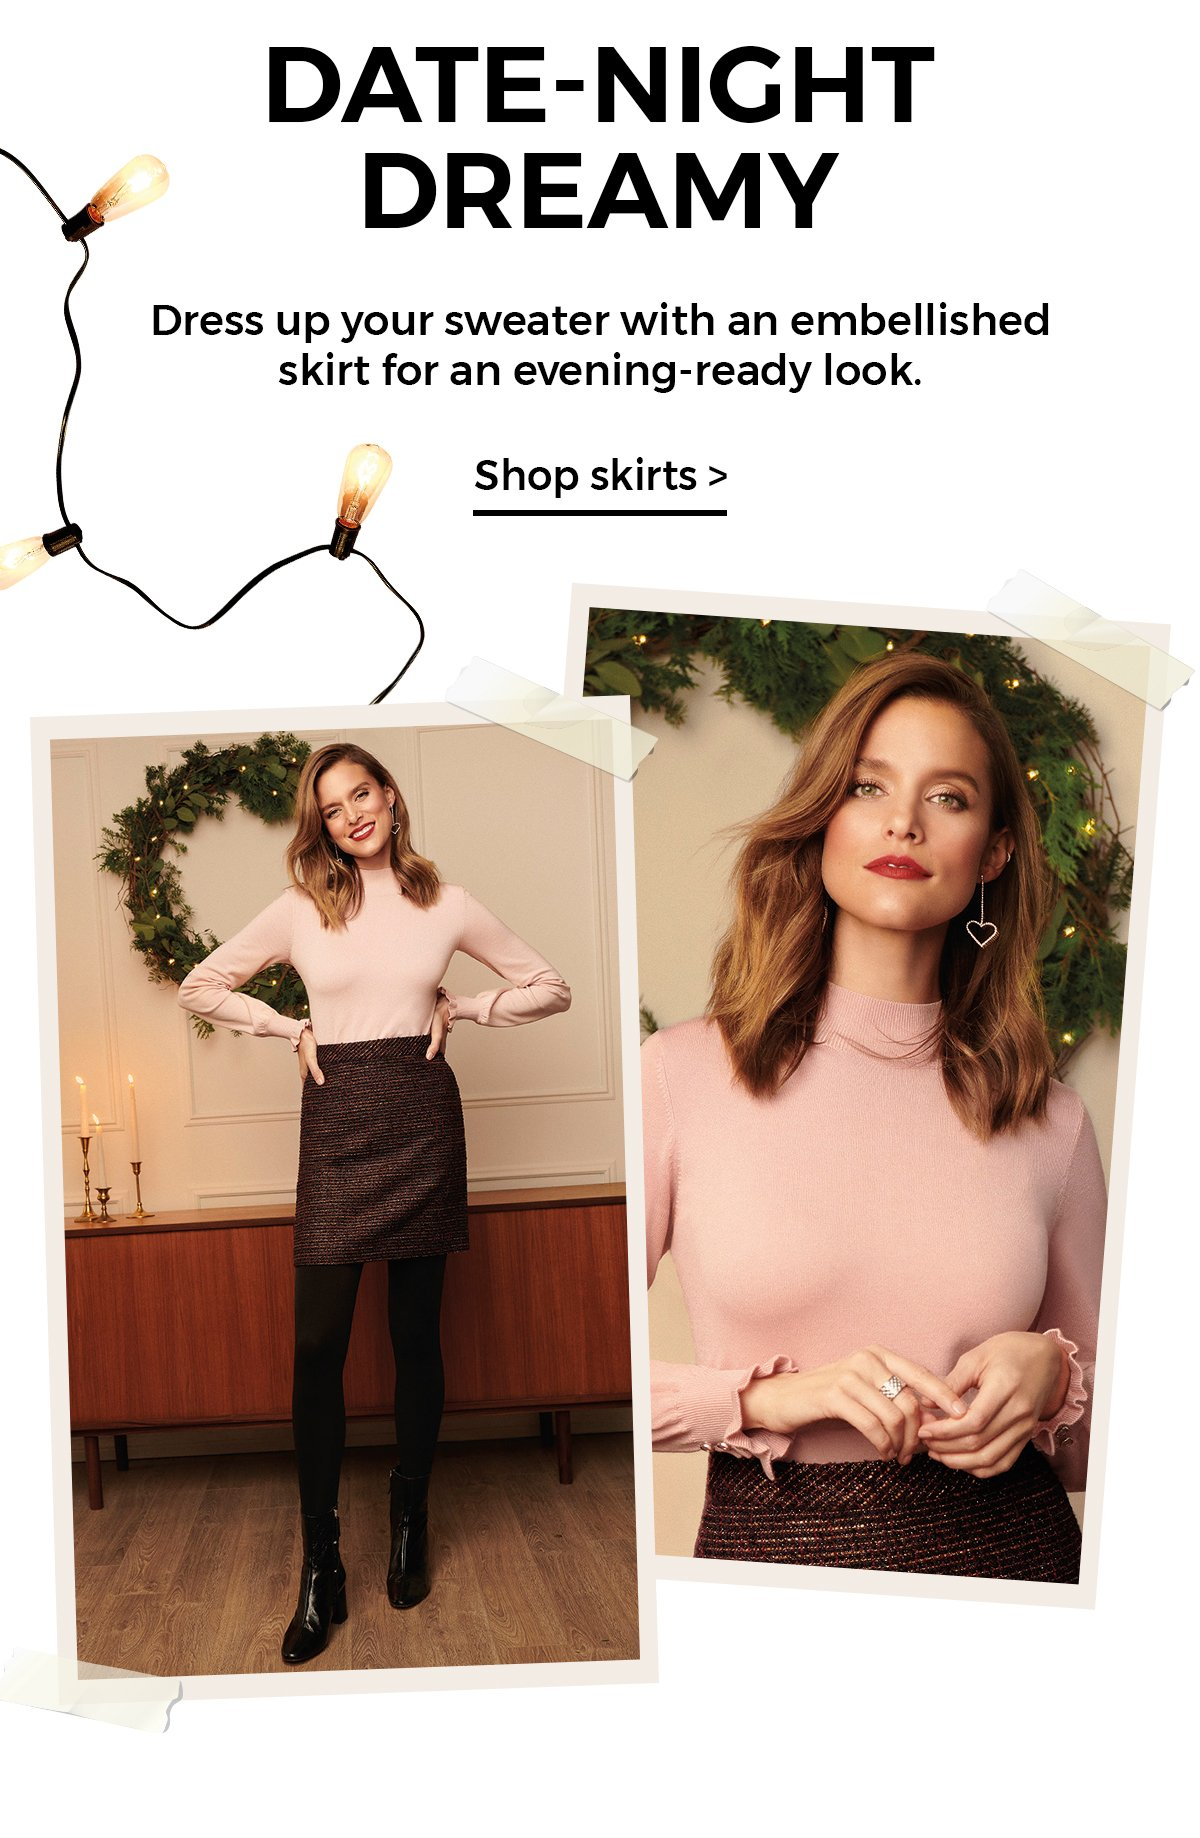 Date-night dreamy Dress up your sweater with an embellished skirt for an evening-ready look. Shop now